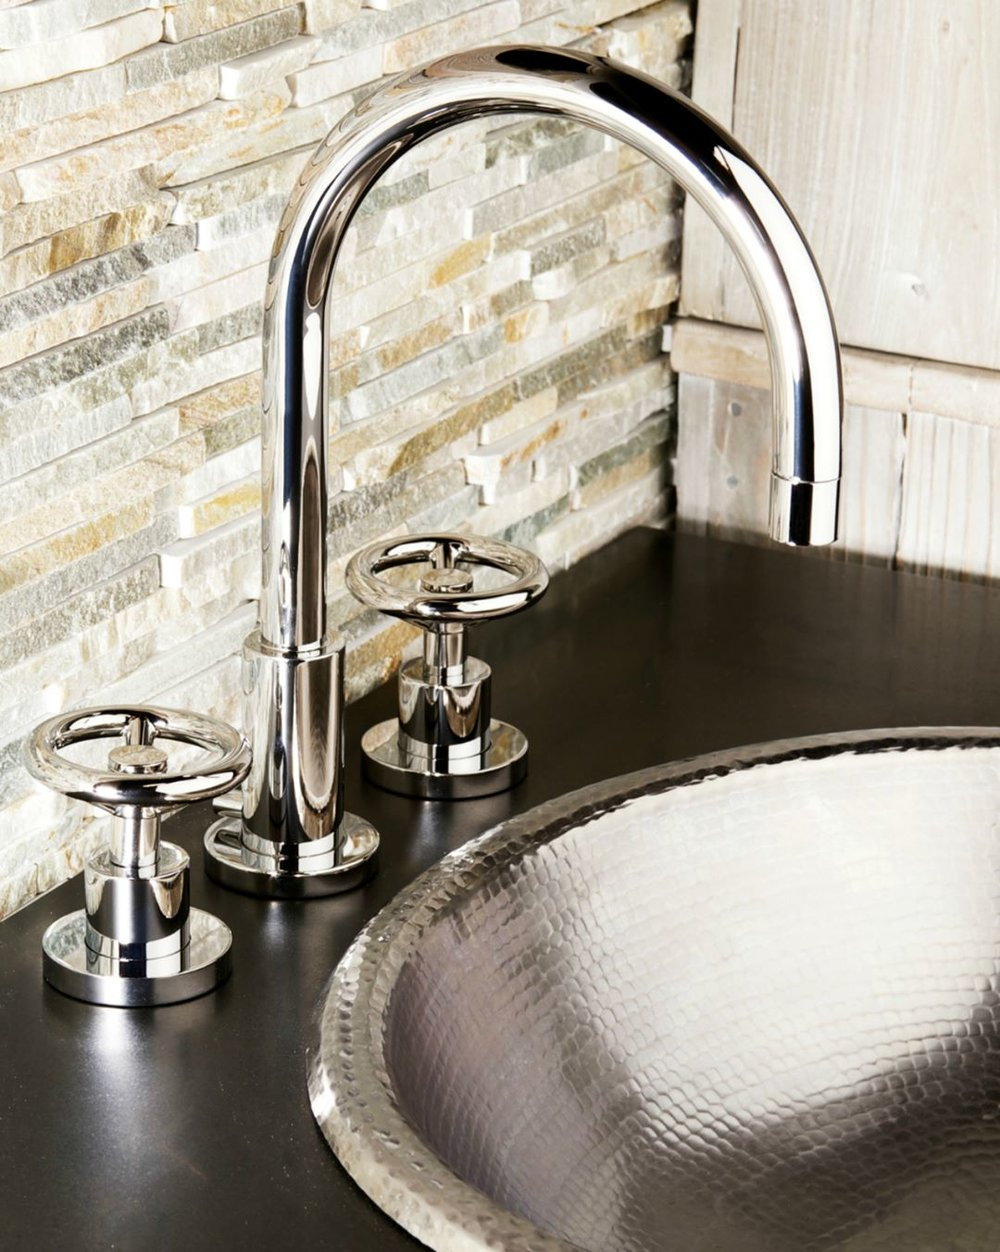 newport brass contemporary widespread bar faucet with wheel handles and gooseneck spout in polished nickel - the ultimate guide to luxury plumbing by the delight of design